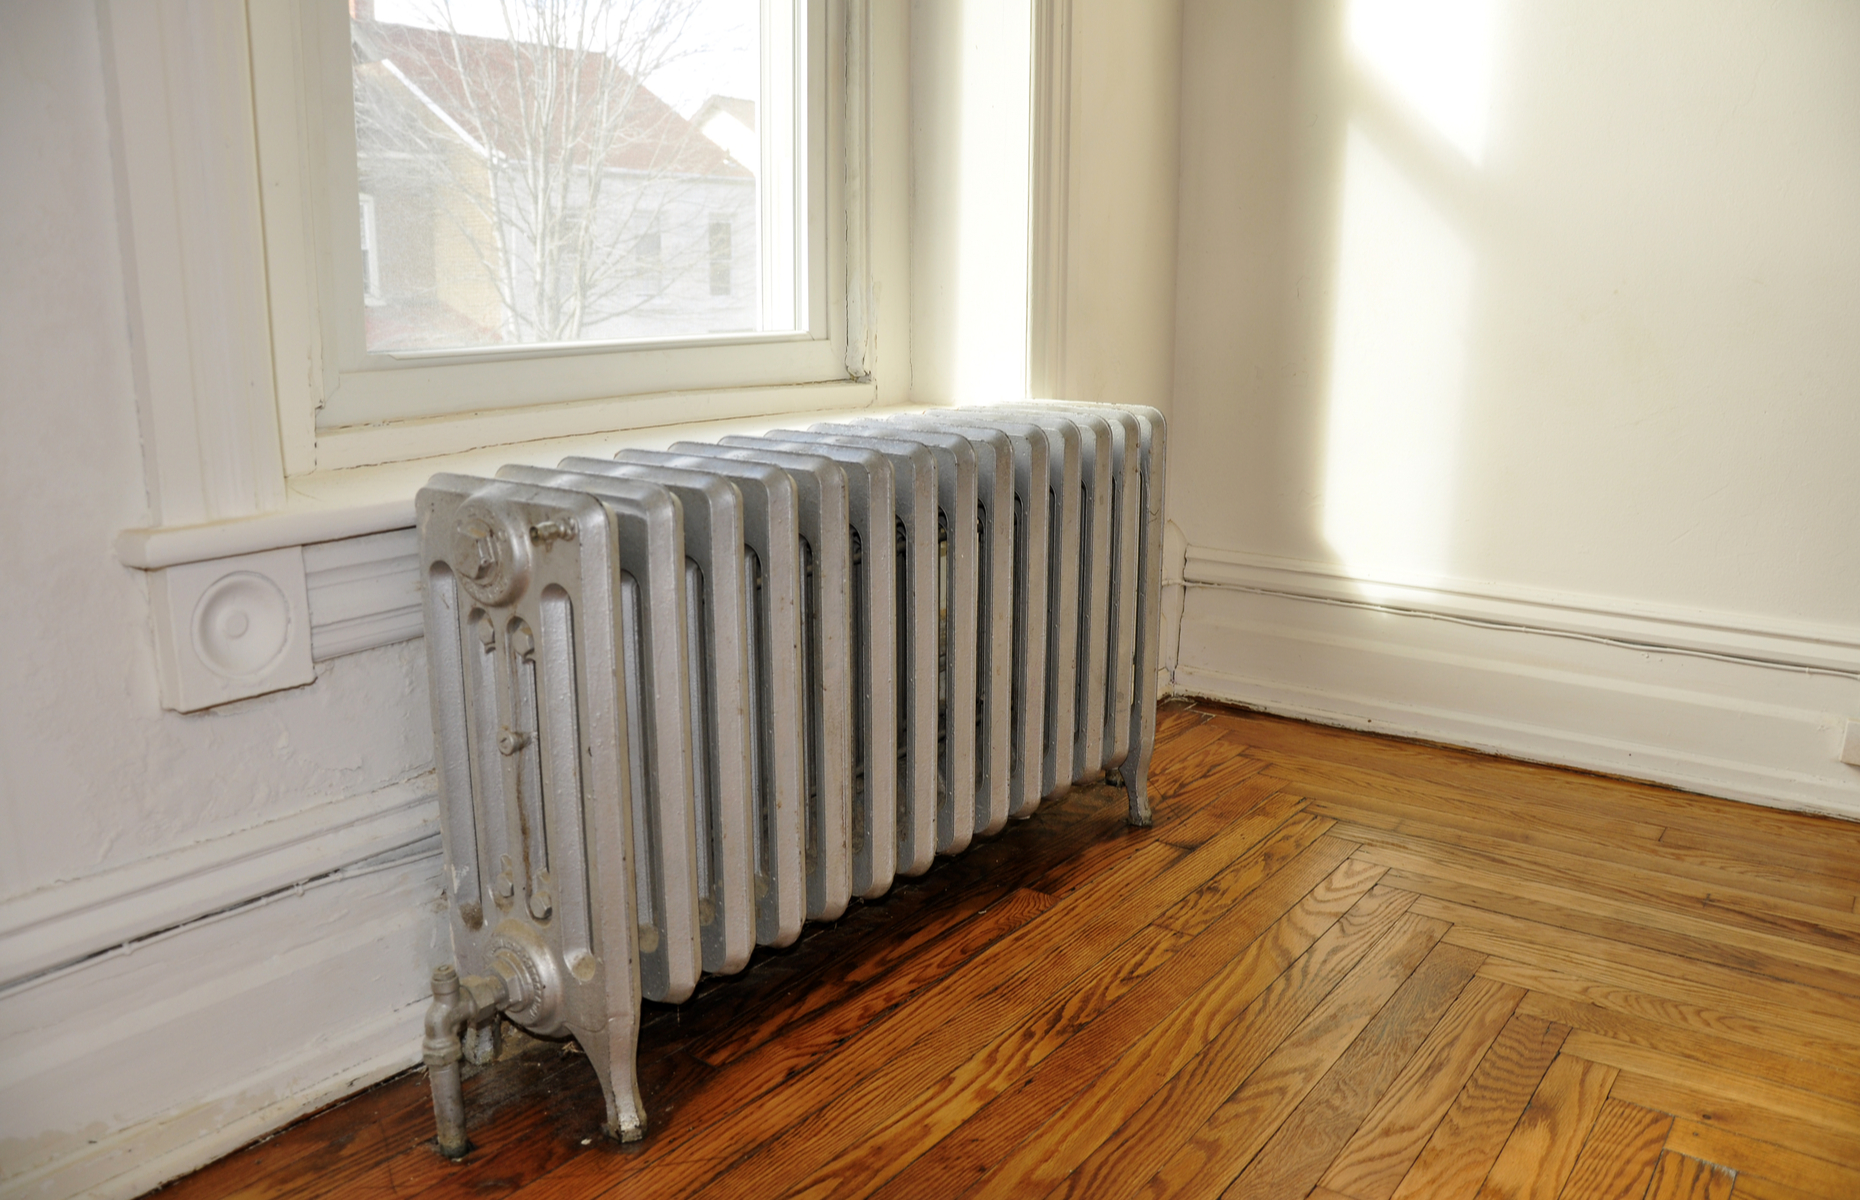 Out of date heating systems can lead to cold, drafty homes. Image: Cynthia Farmer/Shutterstock